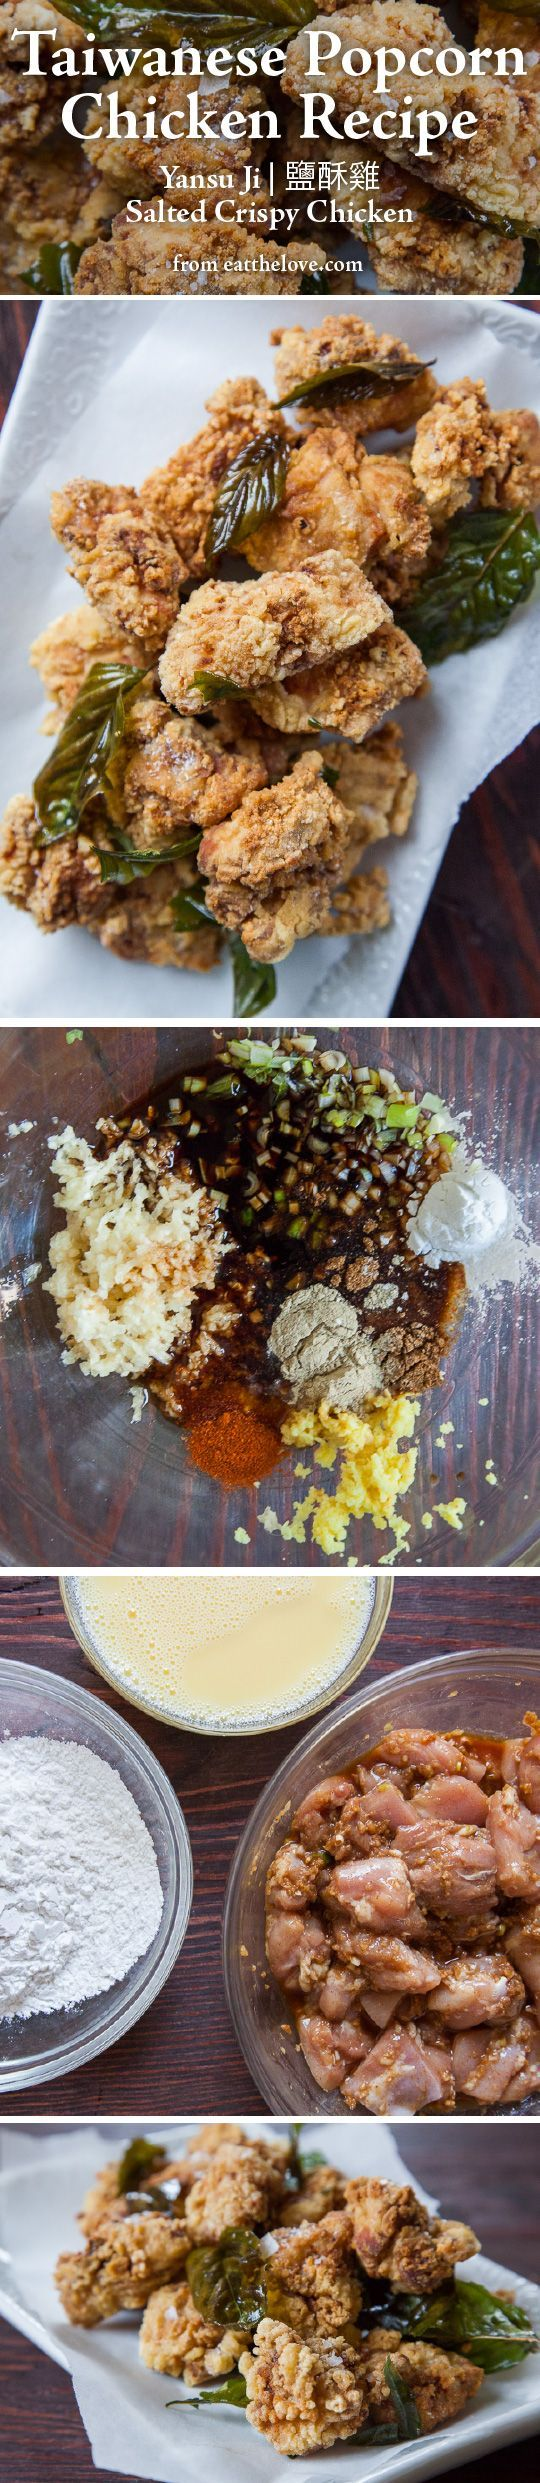 Taiwanese Popcorn Chicken, otherwise known as Yansu Ji or Salted Crispy Chicken. Photo and recipe by Irvin Lin of Eat the Love.